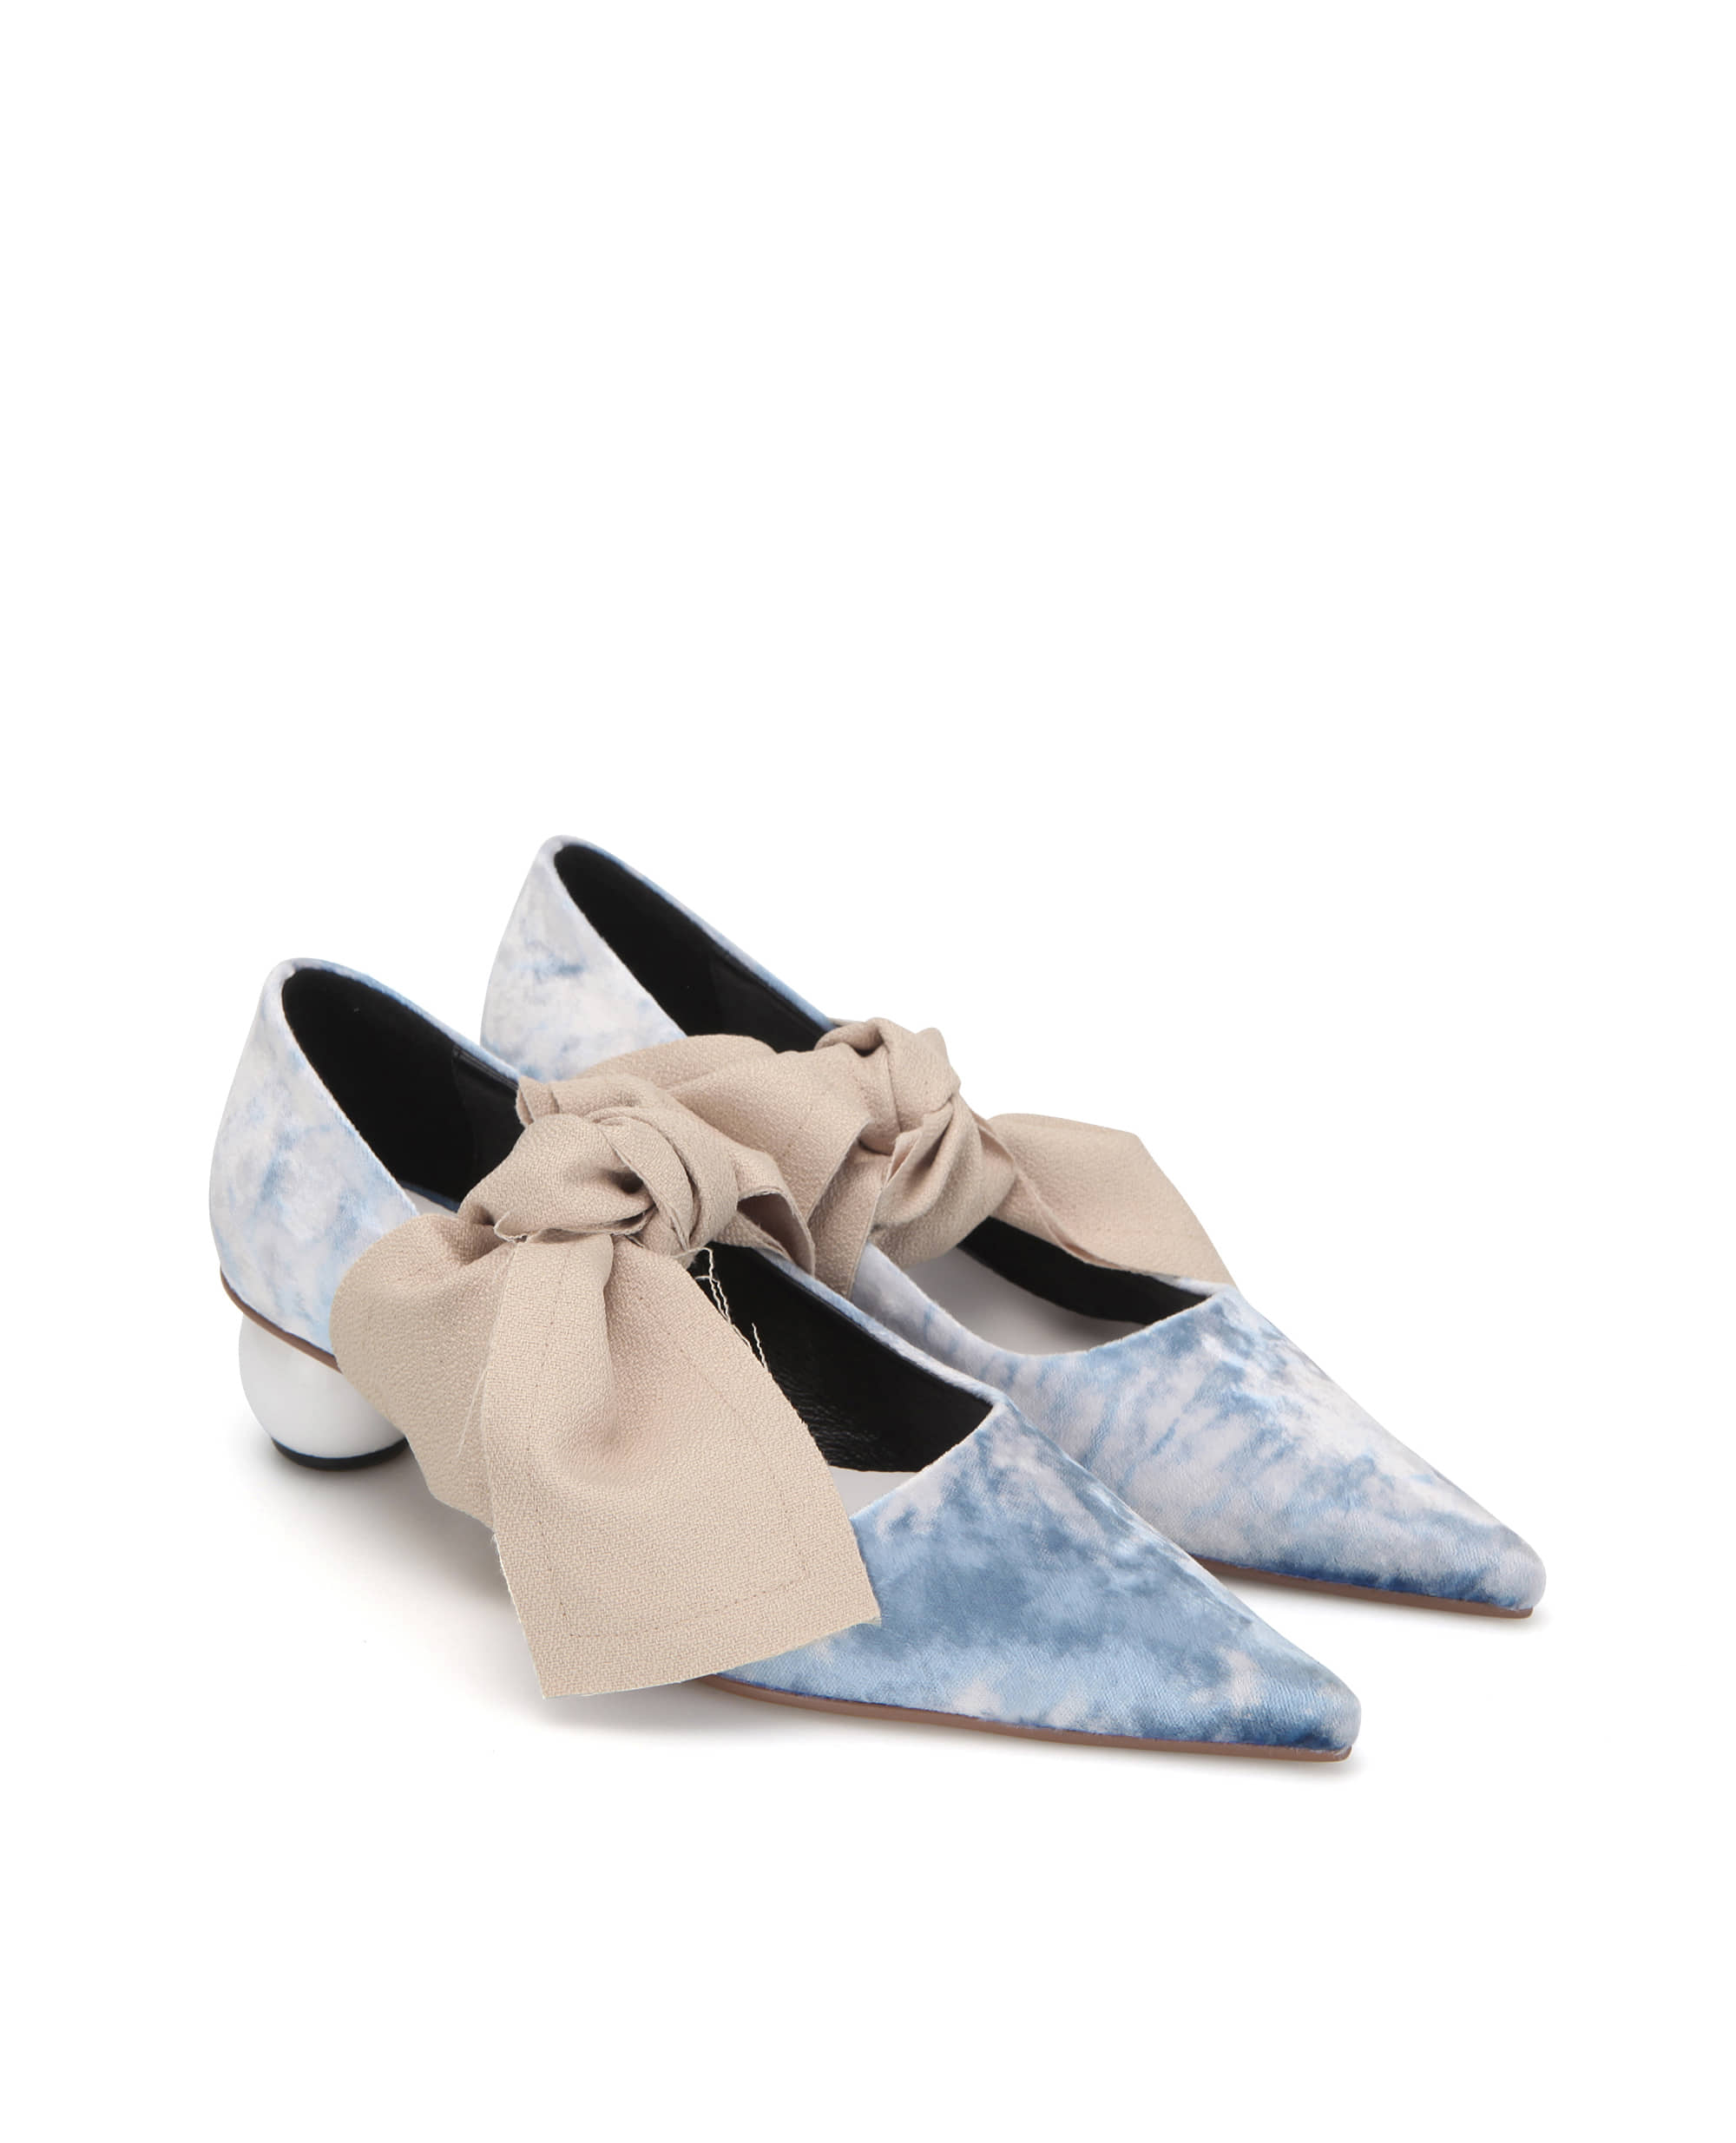 Flat apartment, mid heels, pumps, flat apartment shoes, shoes, pointed toe shoes, kitten heels, 플랫아파트먼트, 펌프스, 미드힐, 키튼힐